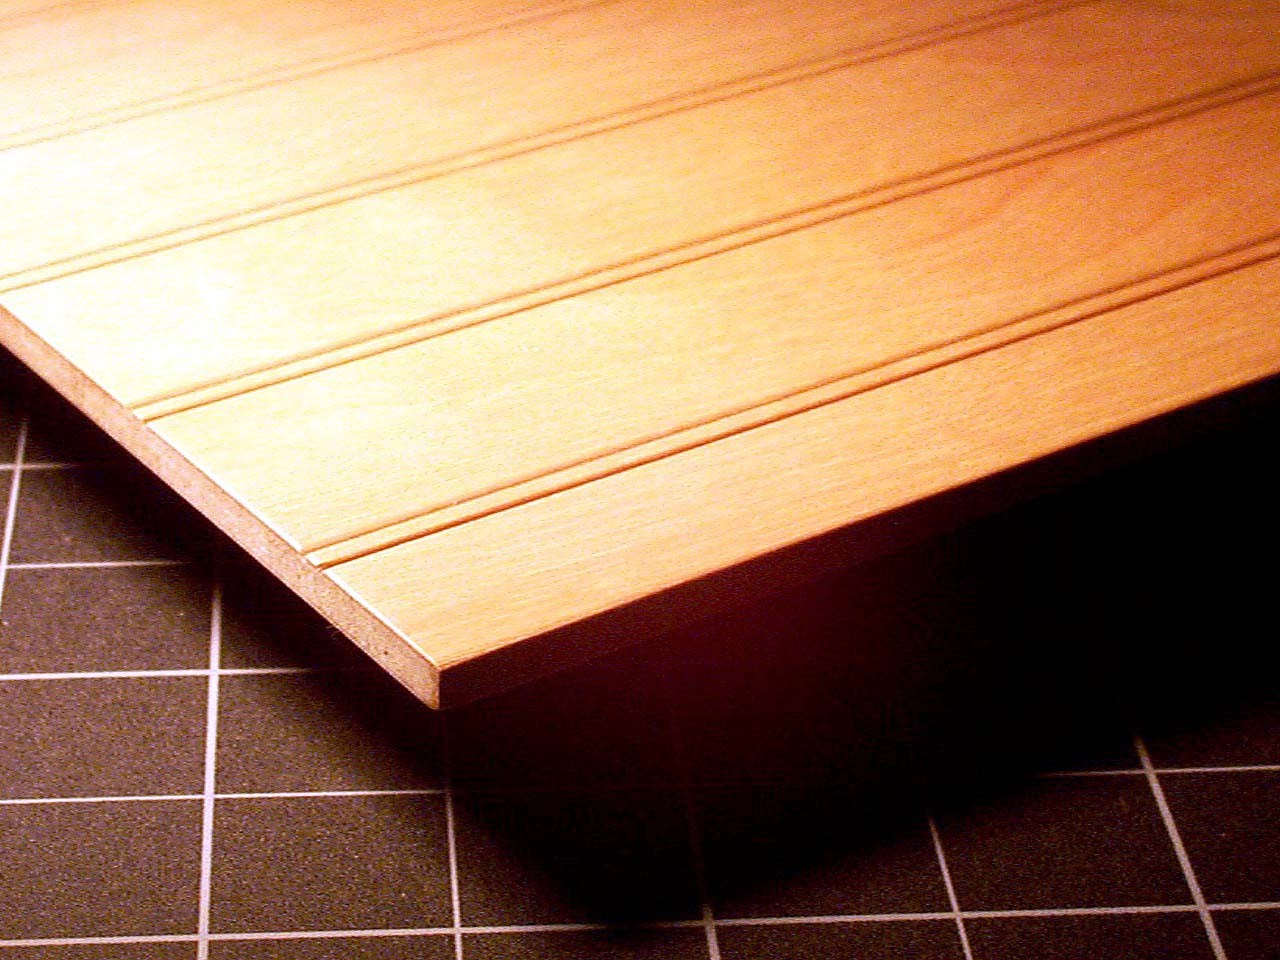 Half Inch Plywood Choosing The Best Type Of Plywood For Cabinets Columbia Forest